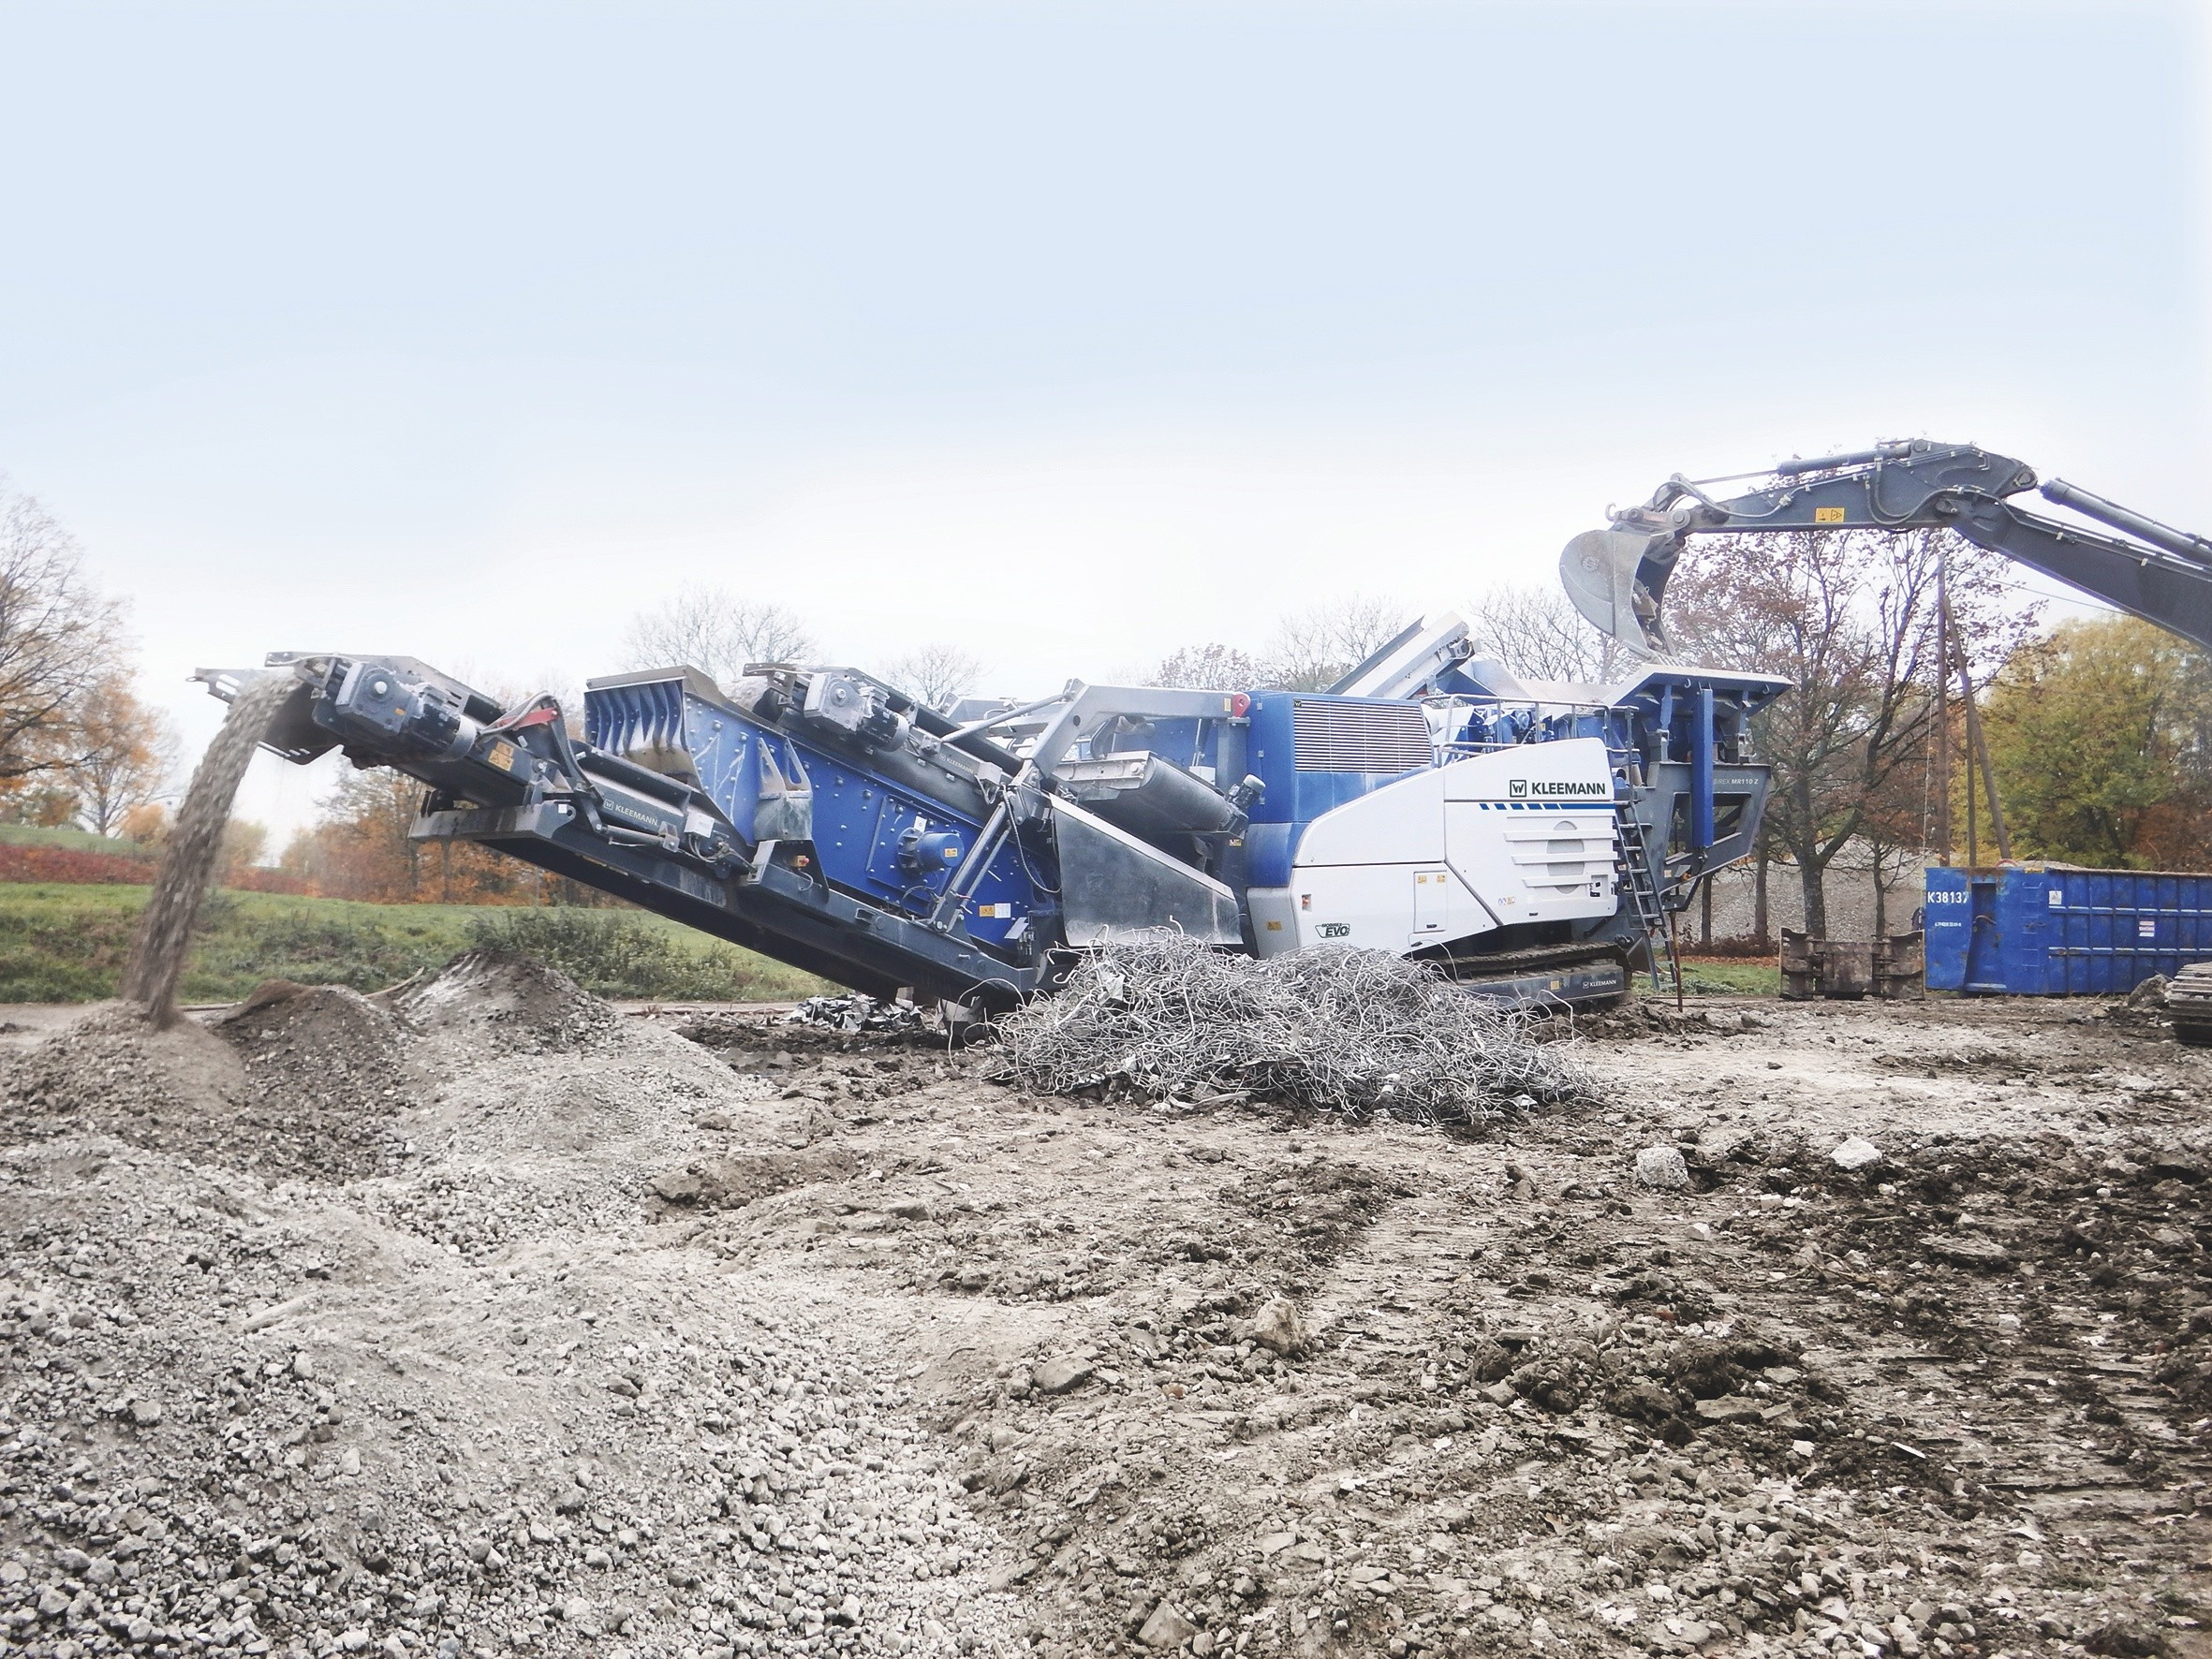 What's new in mobile crushing and screening?